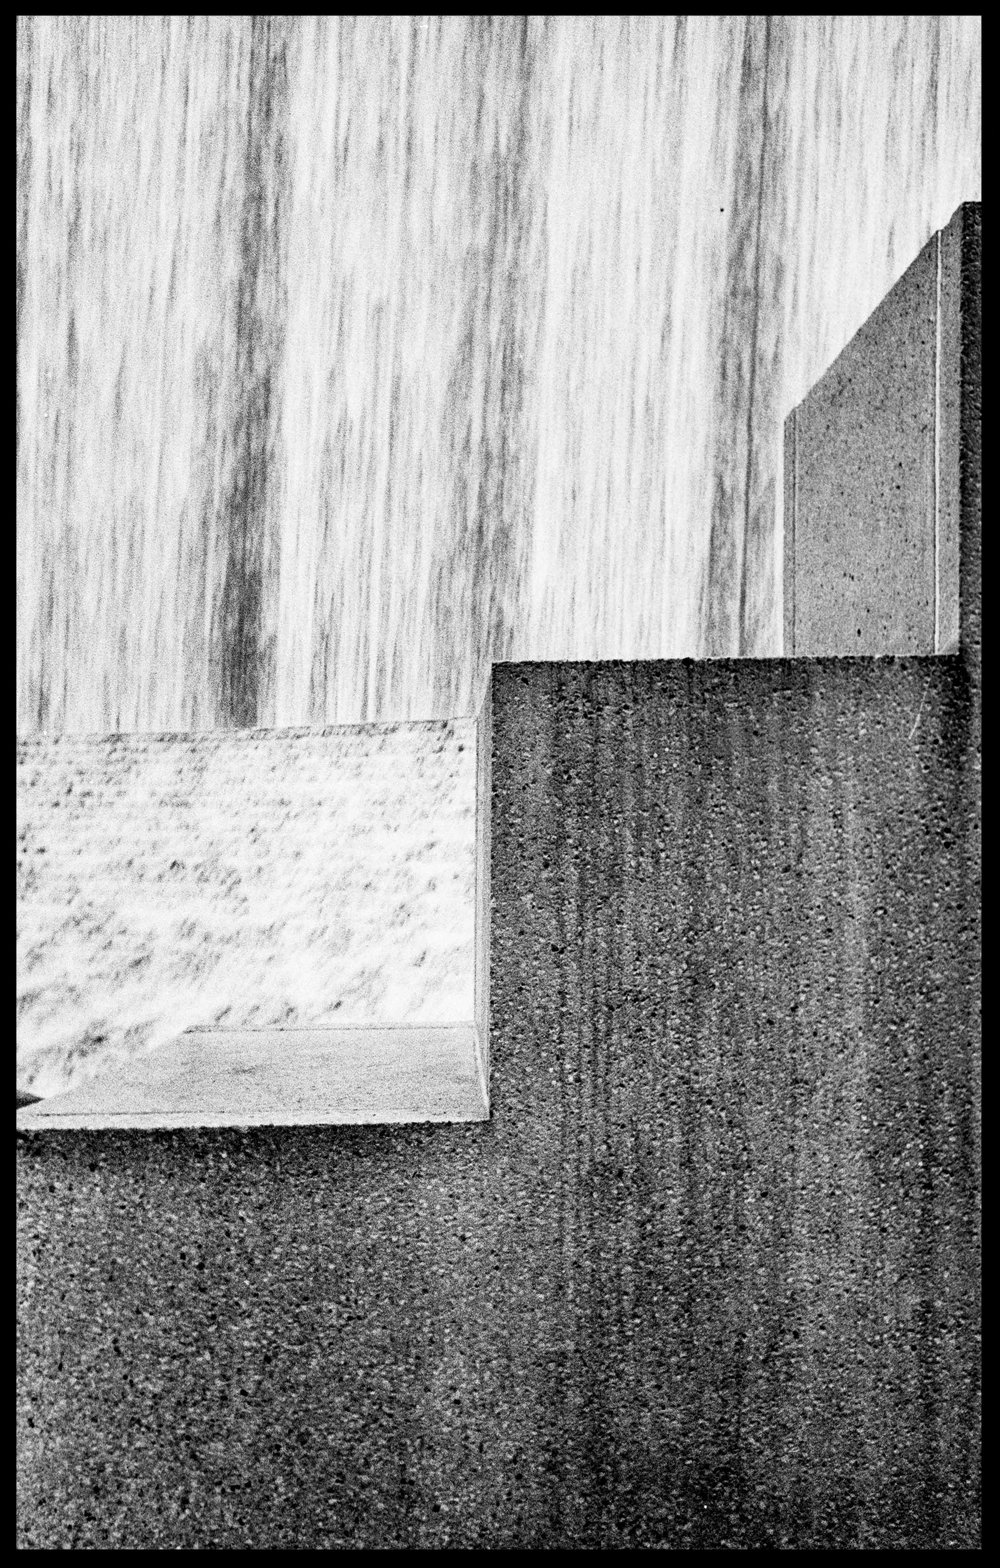 Water Wall, Houston Galleria, Leica M2, Ilford HP5.